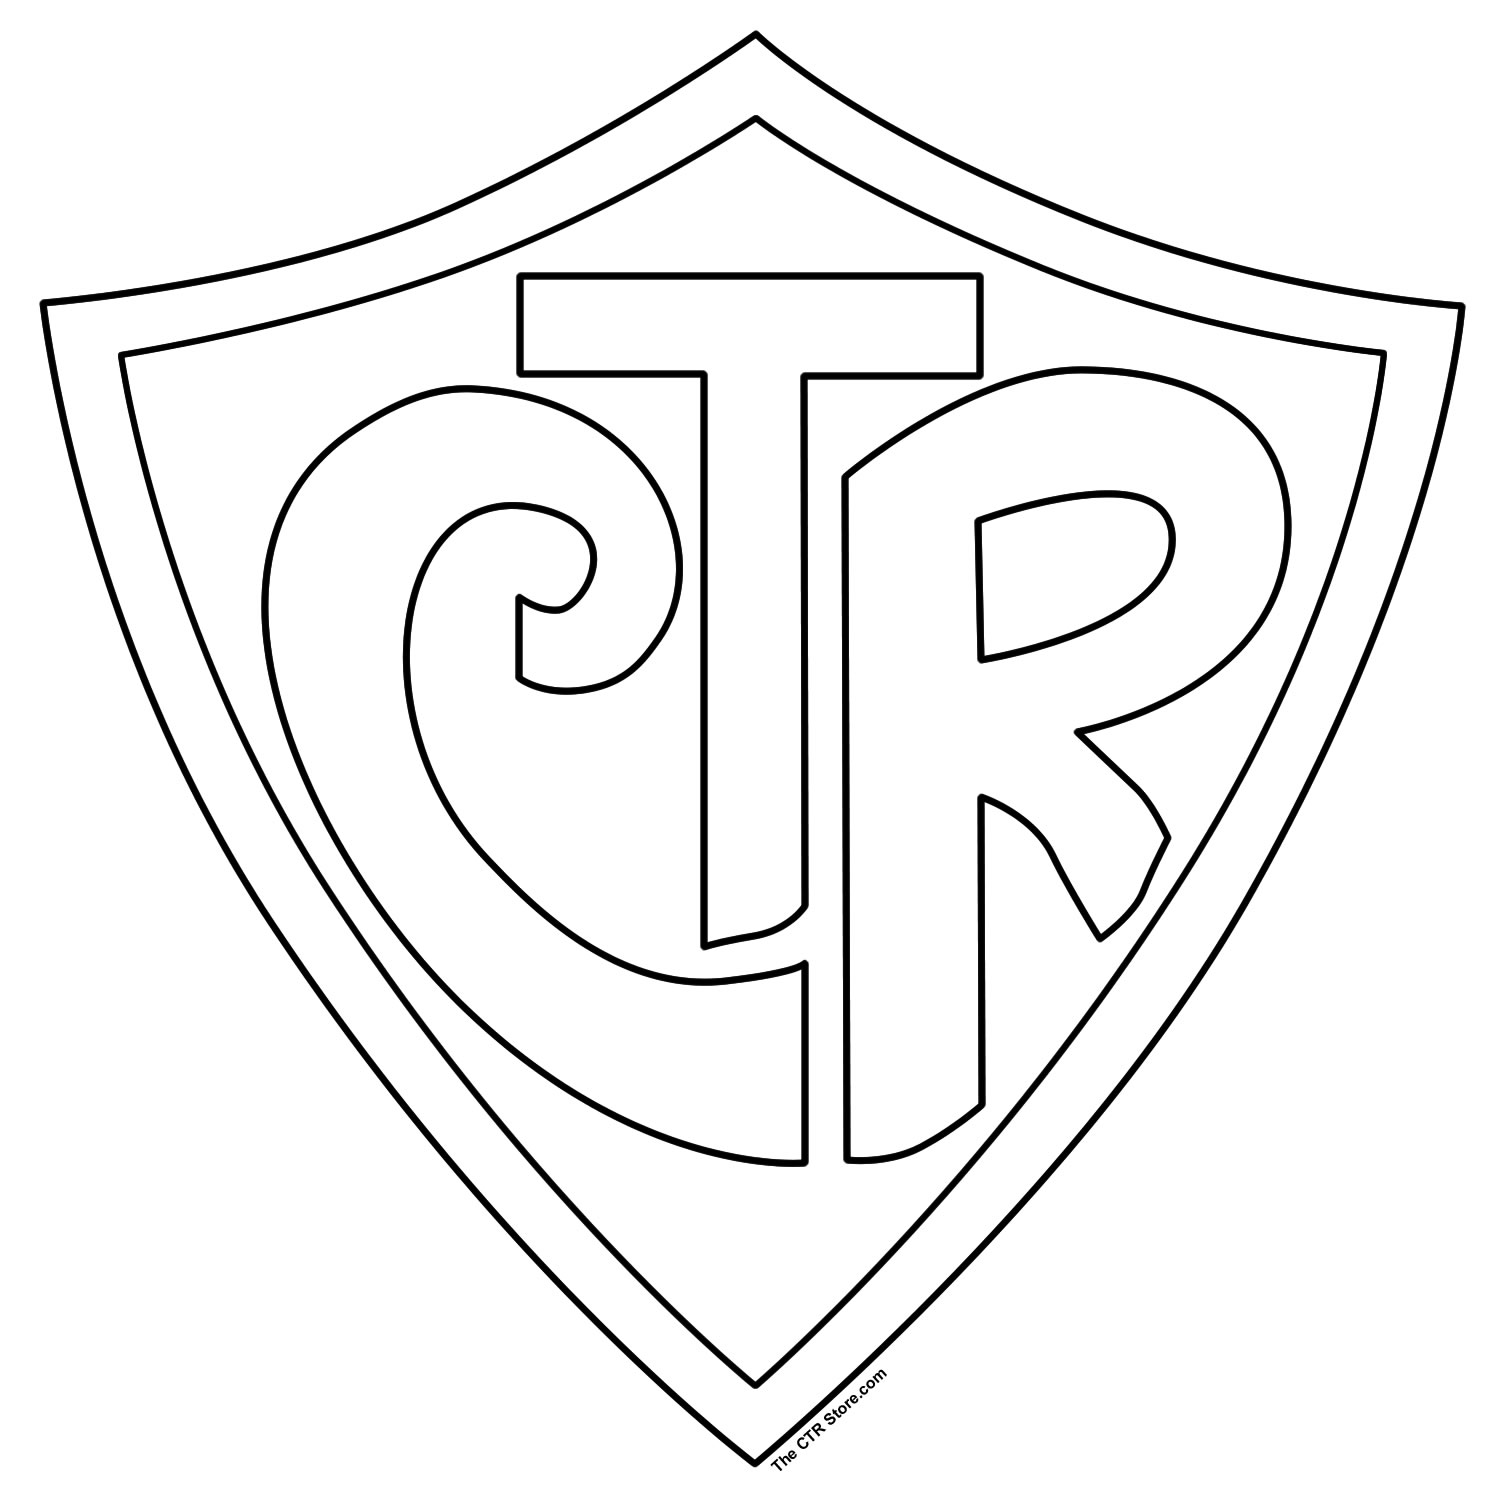 Drawn shield ctr And } Ctr shield man